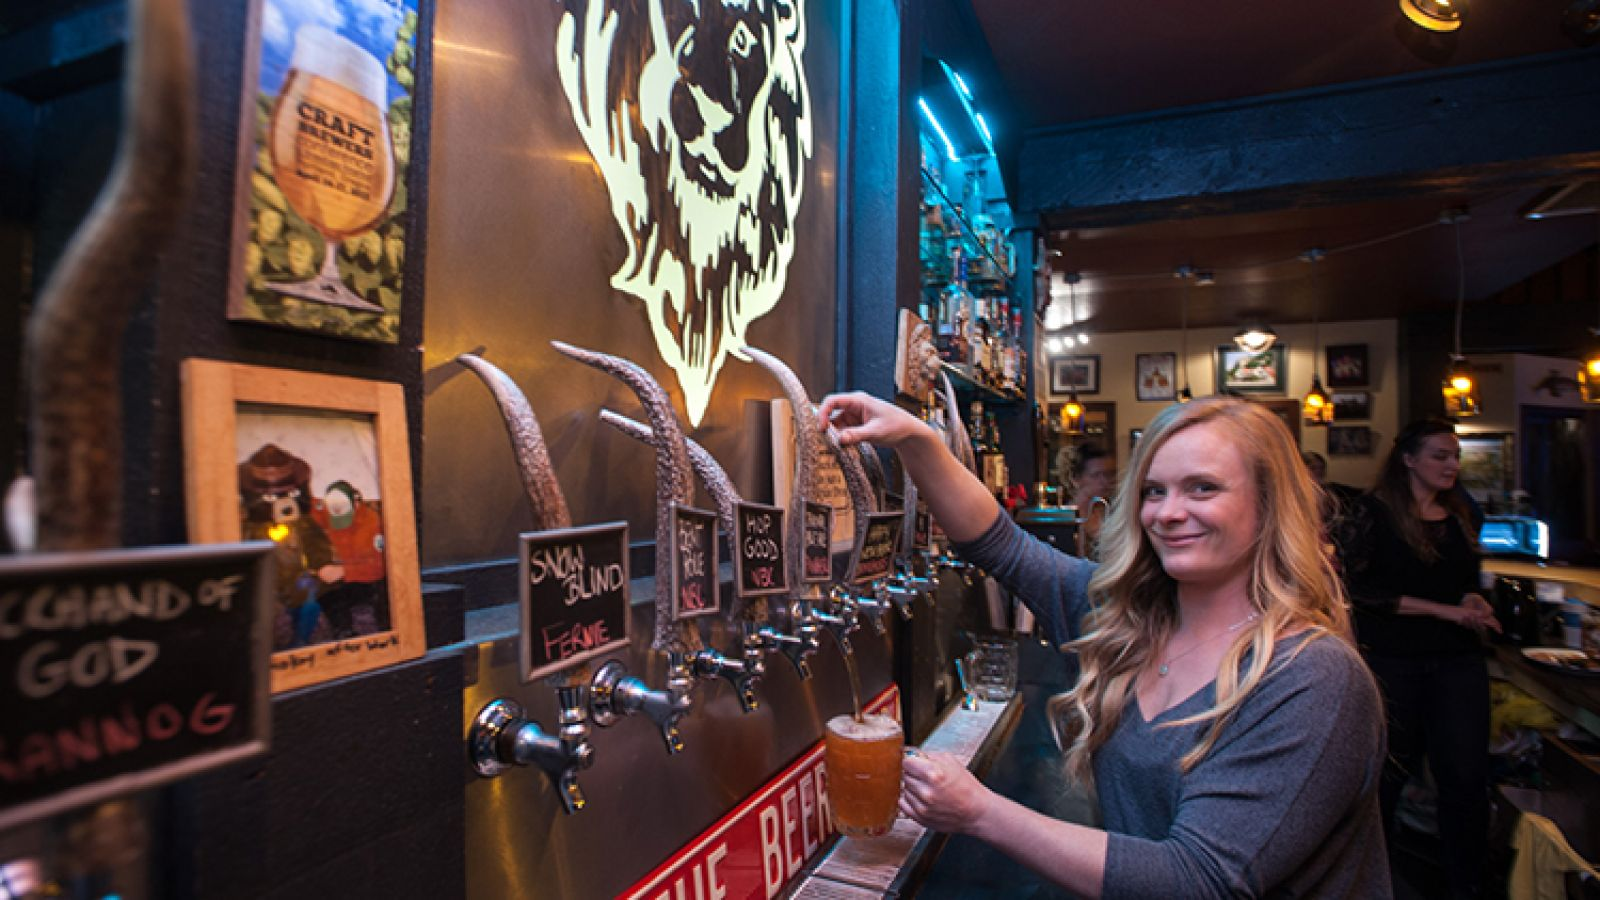 Twelve craft beers on tap